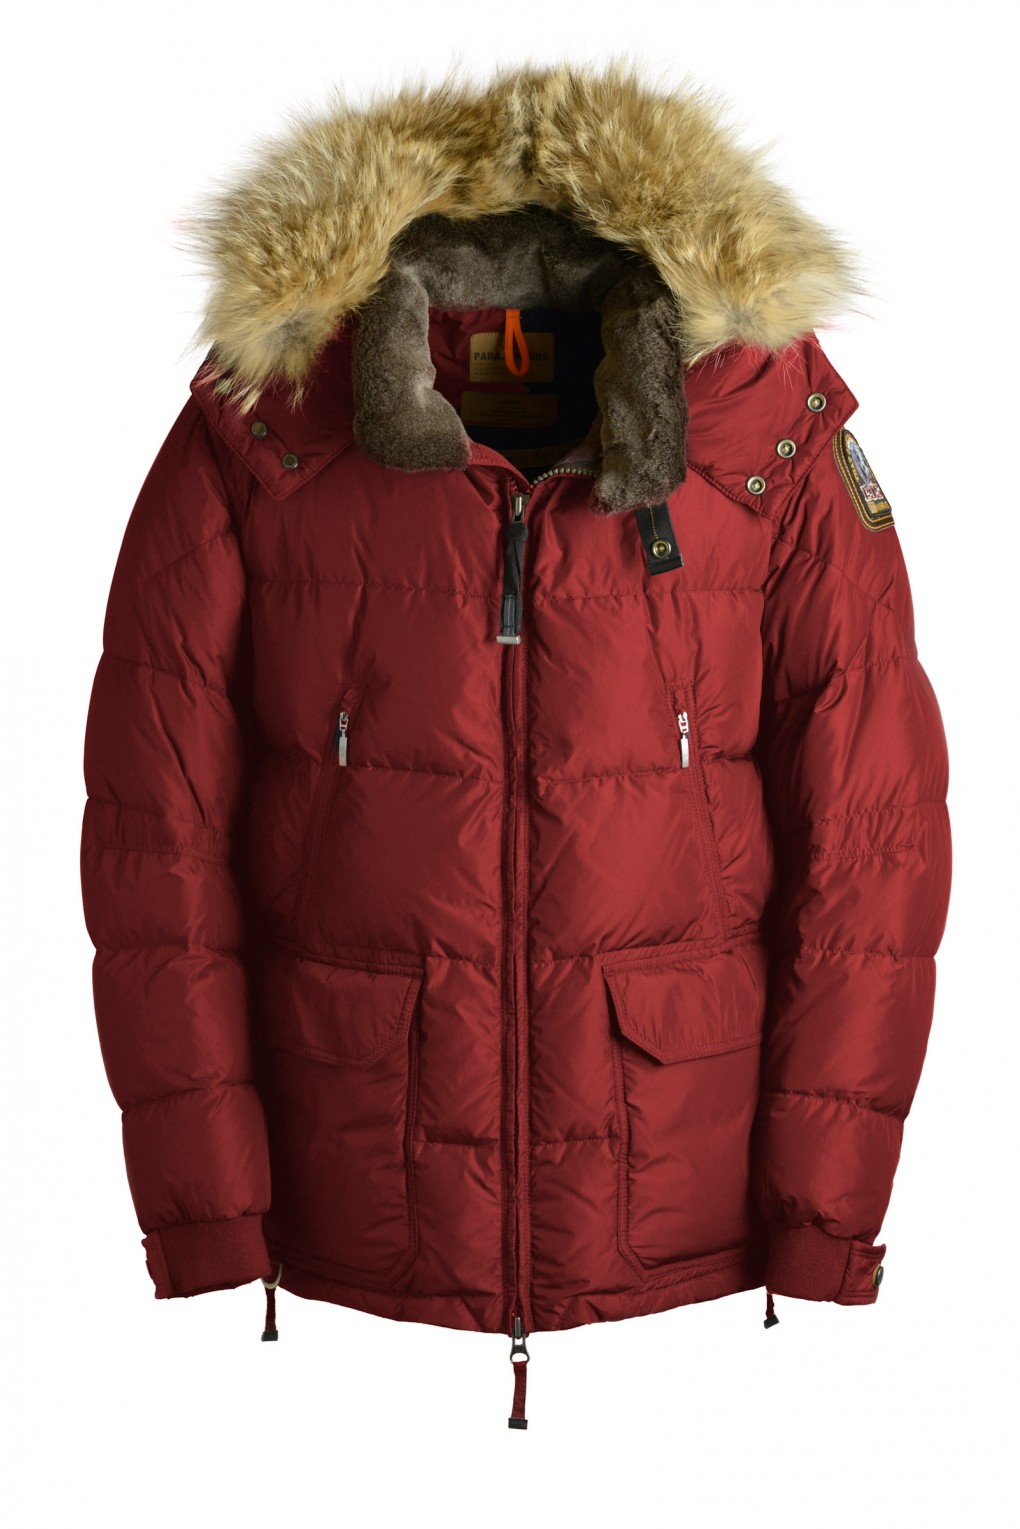 parajumpers MAINE man outerwear Red